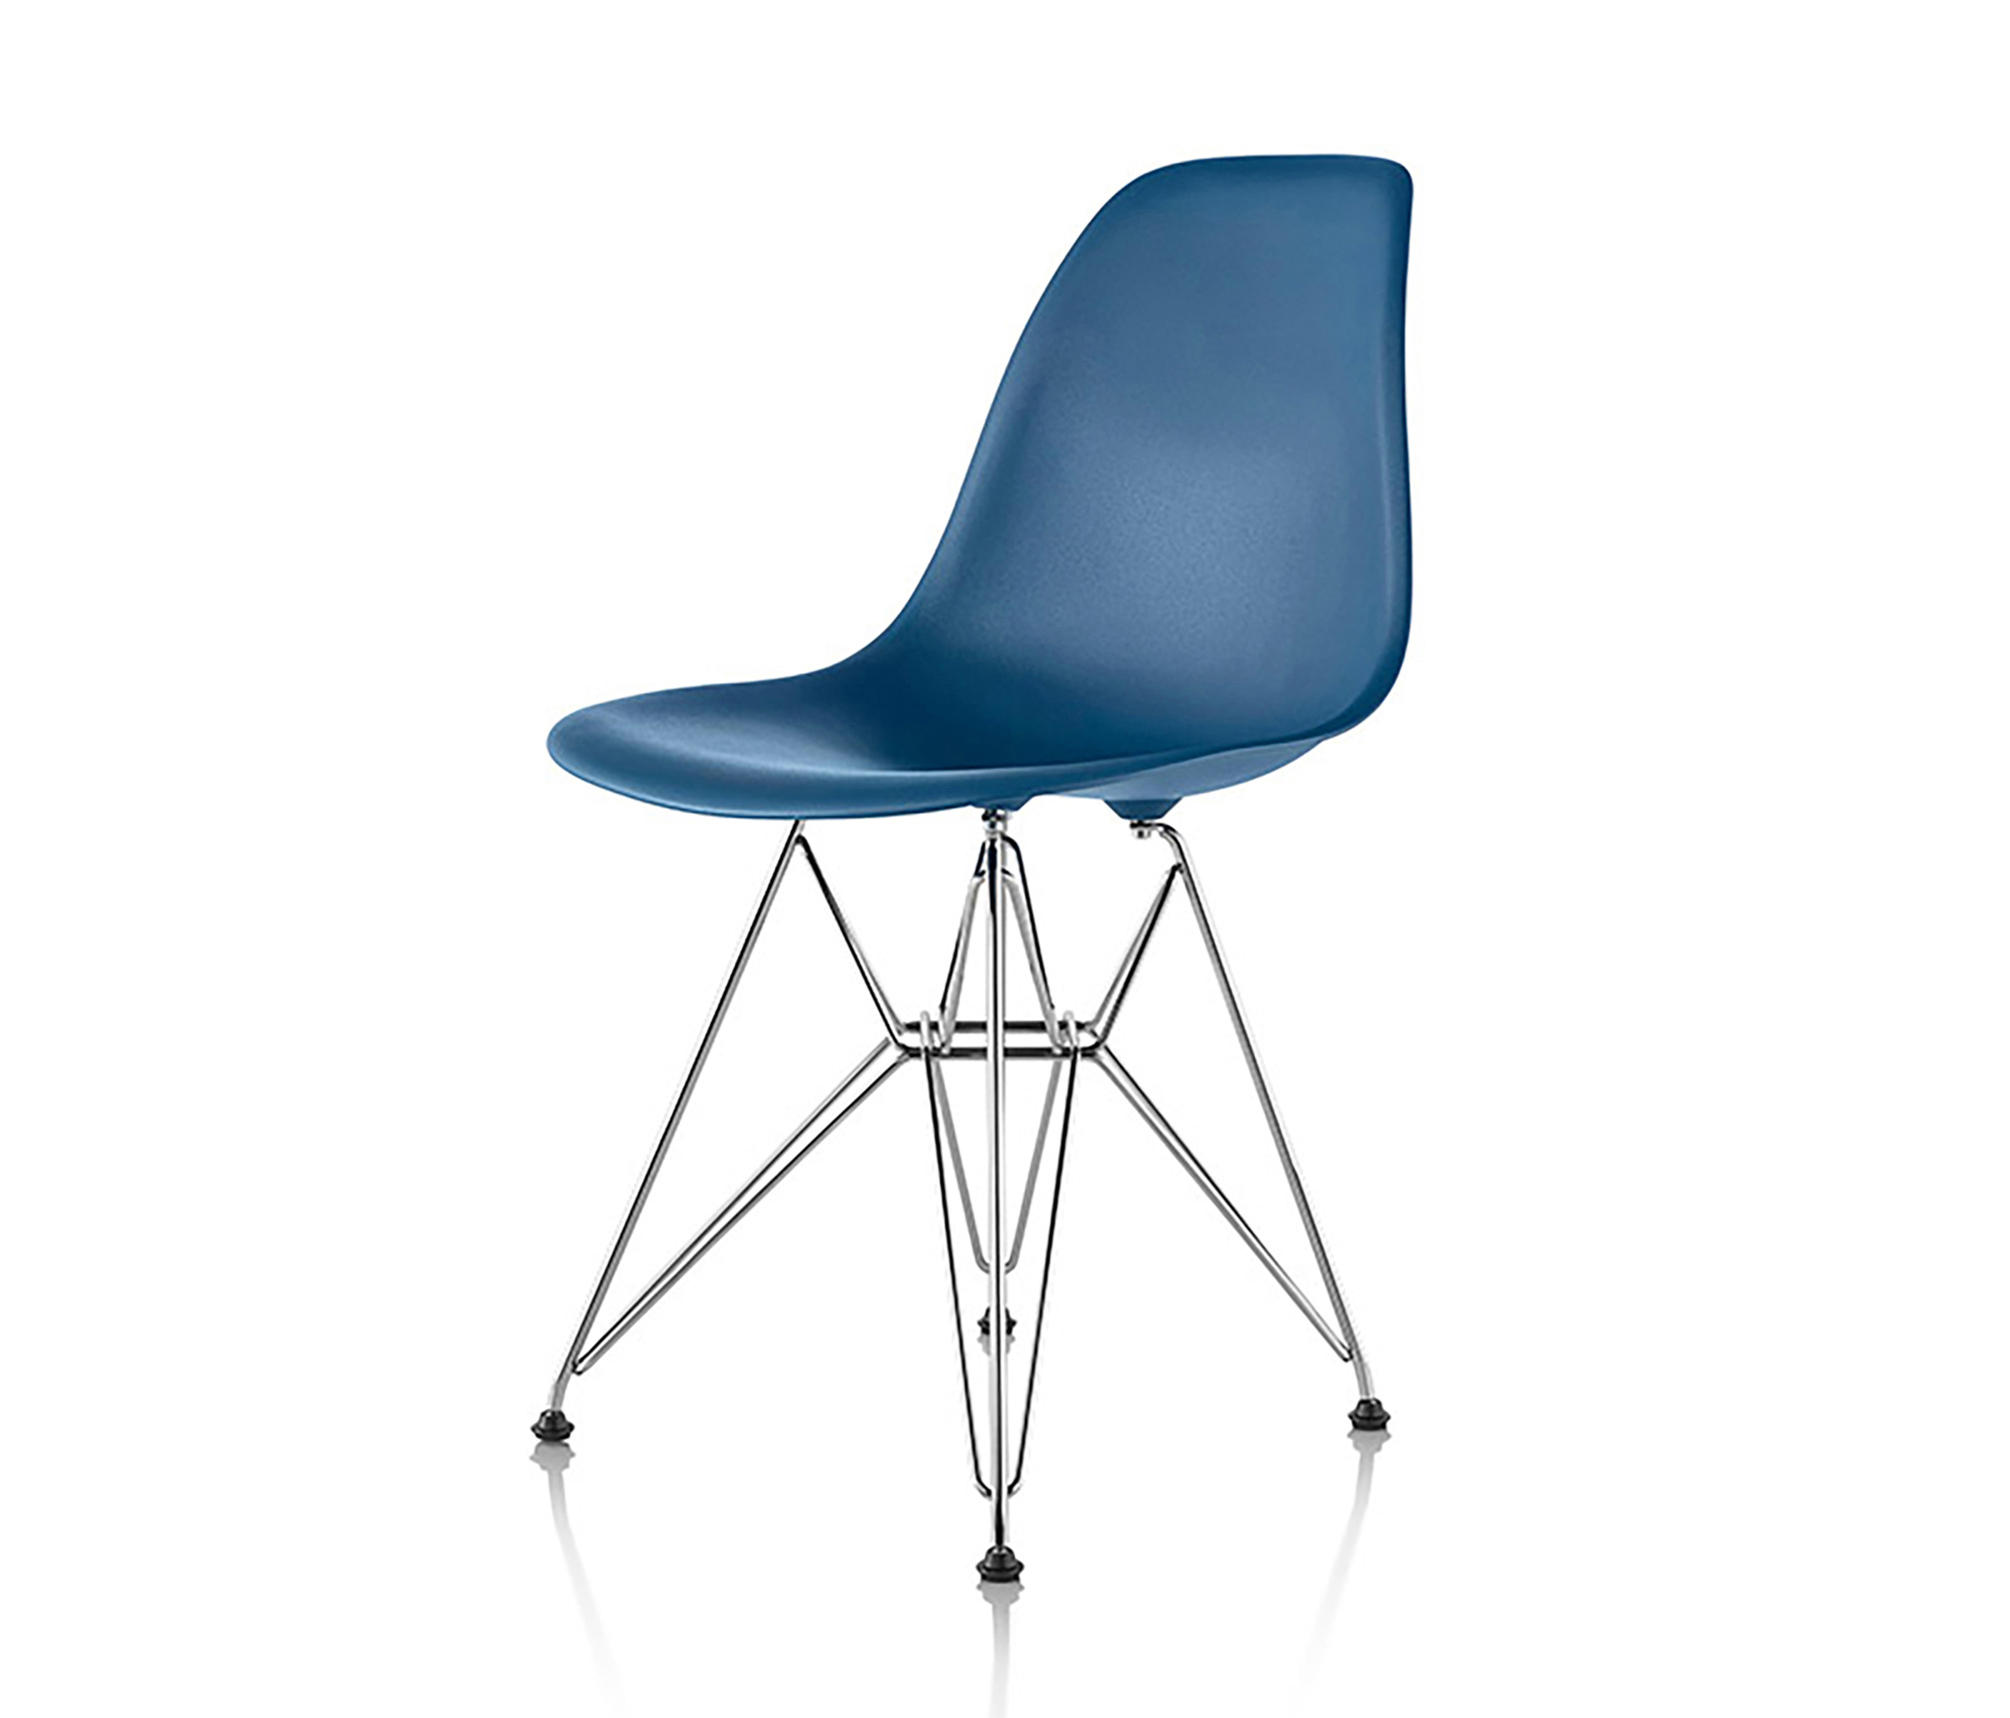 Eames Molded Plastic Side Chair By Herman Miller | Restaurant Chairs